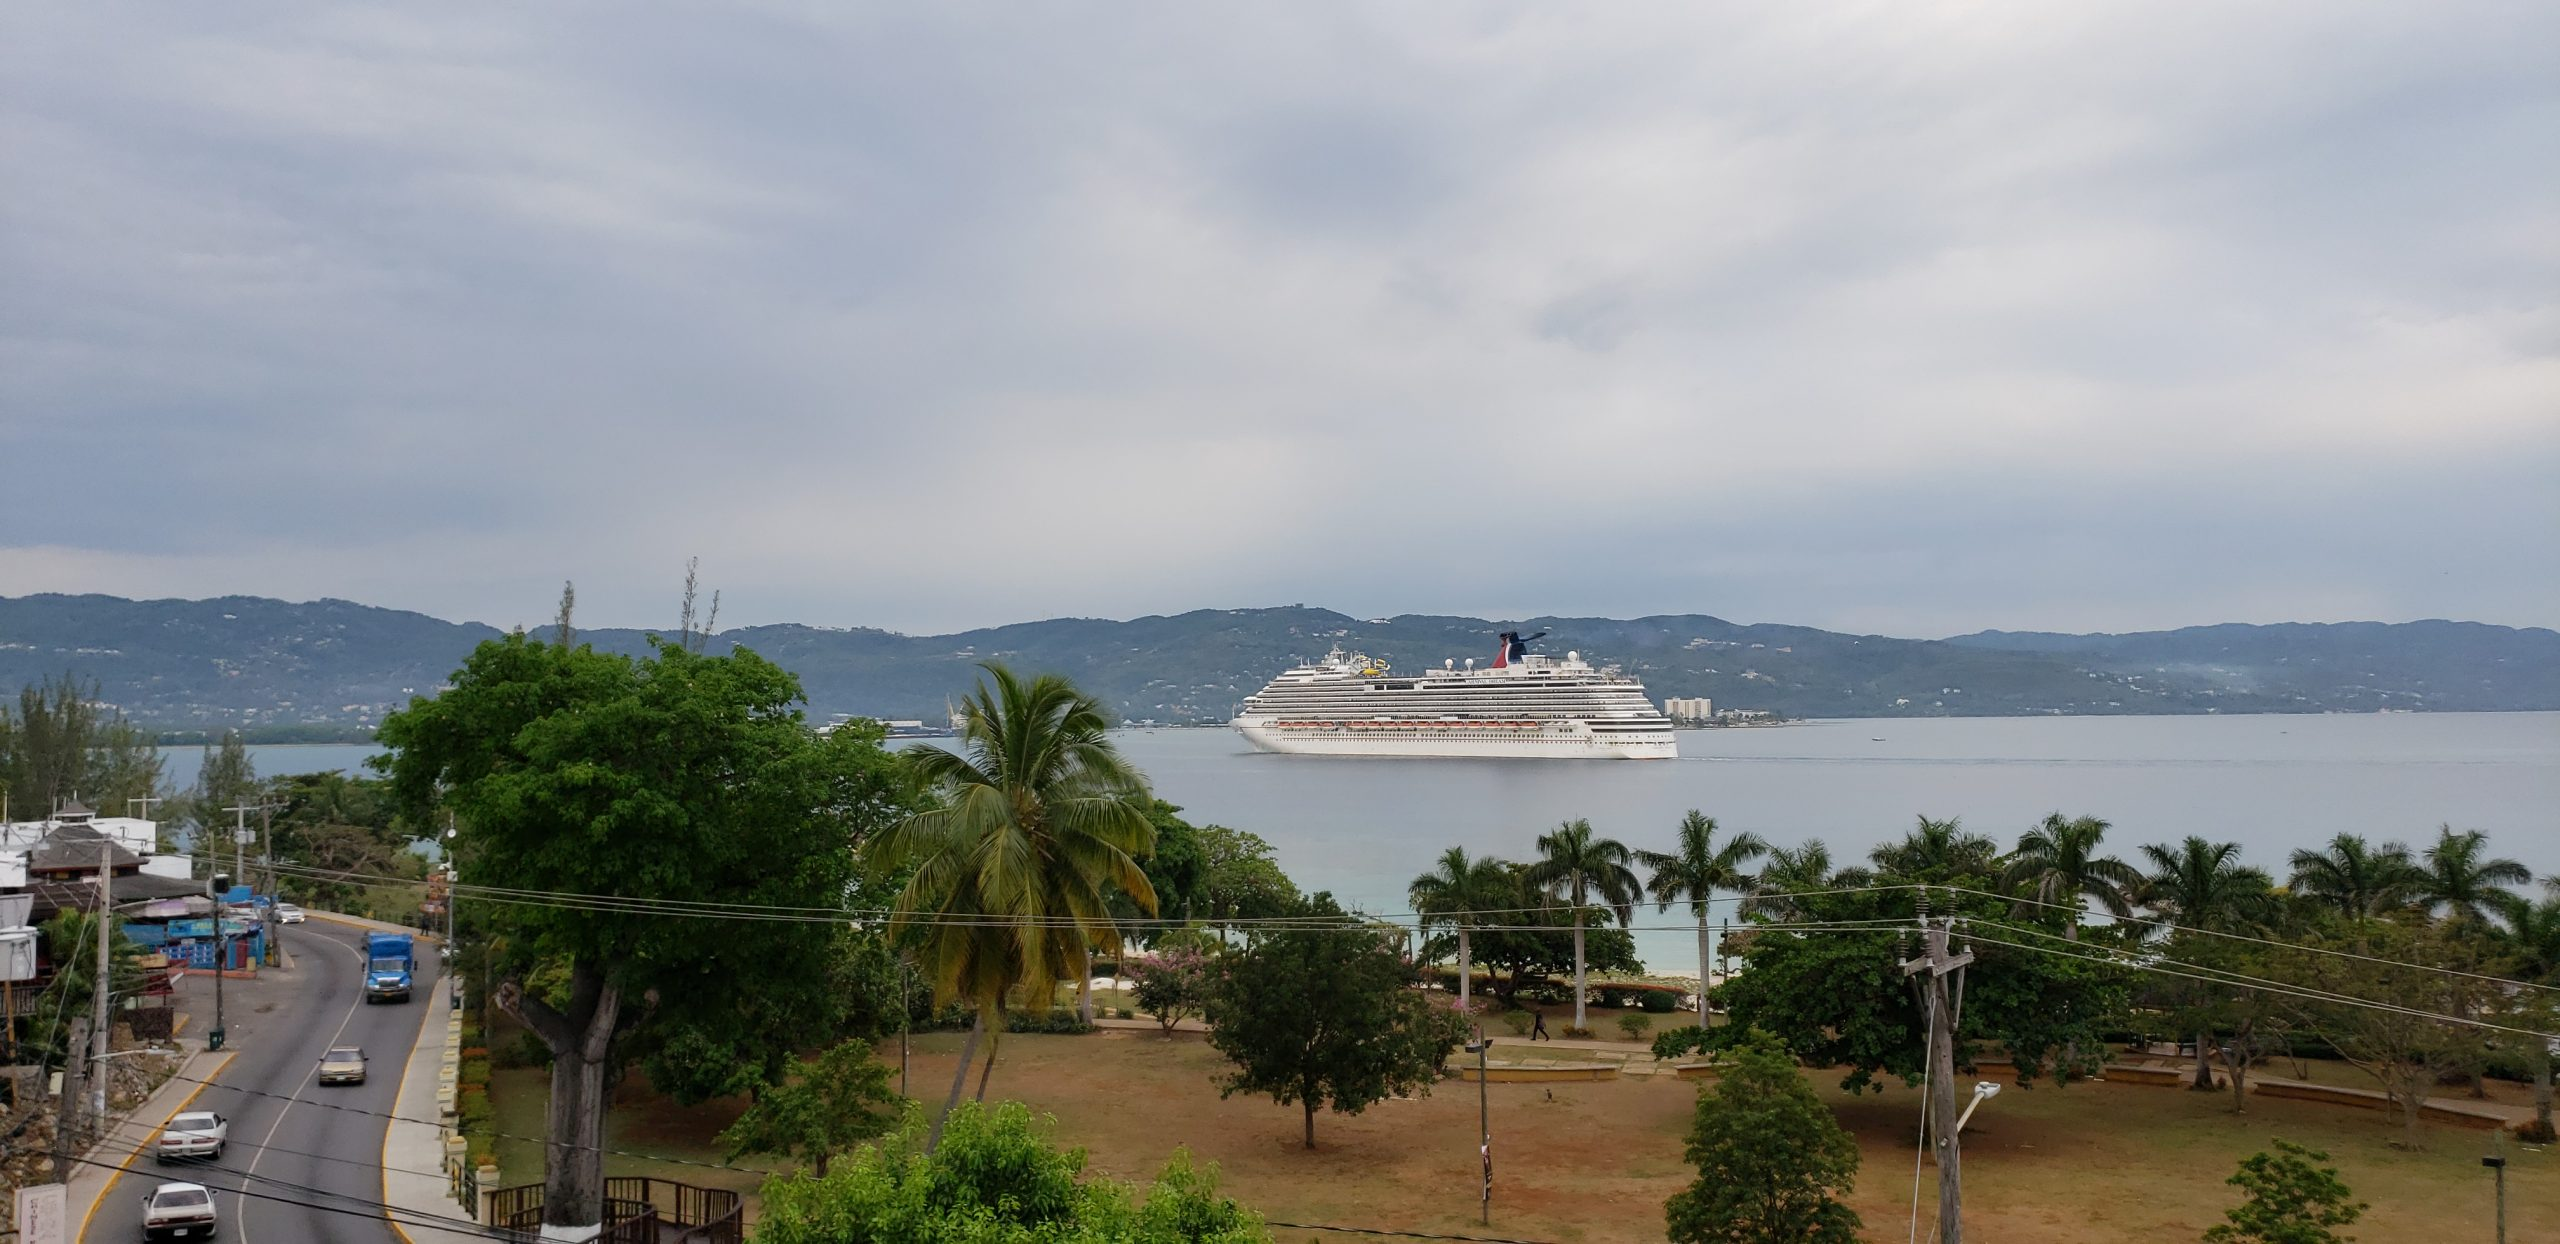 Carnival Cruise Lines in Jamaica